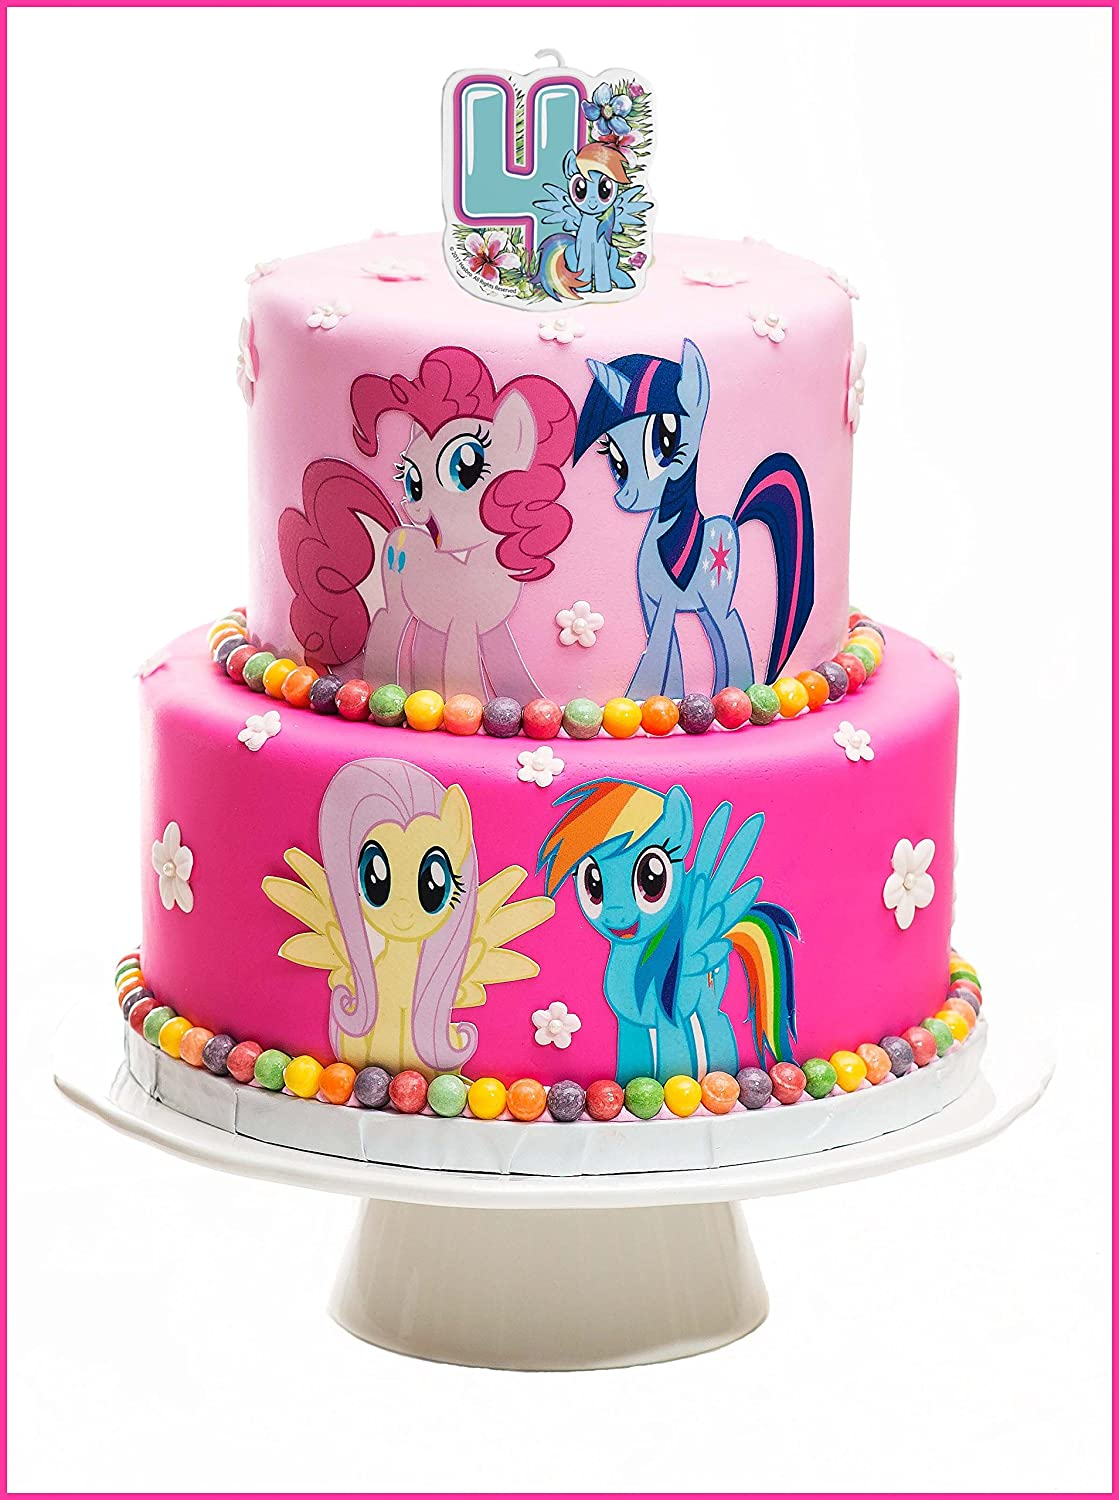 Andle On A Cake Topper 4 Year My Little Pony Must Have Accessories